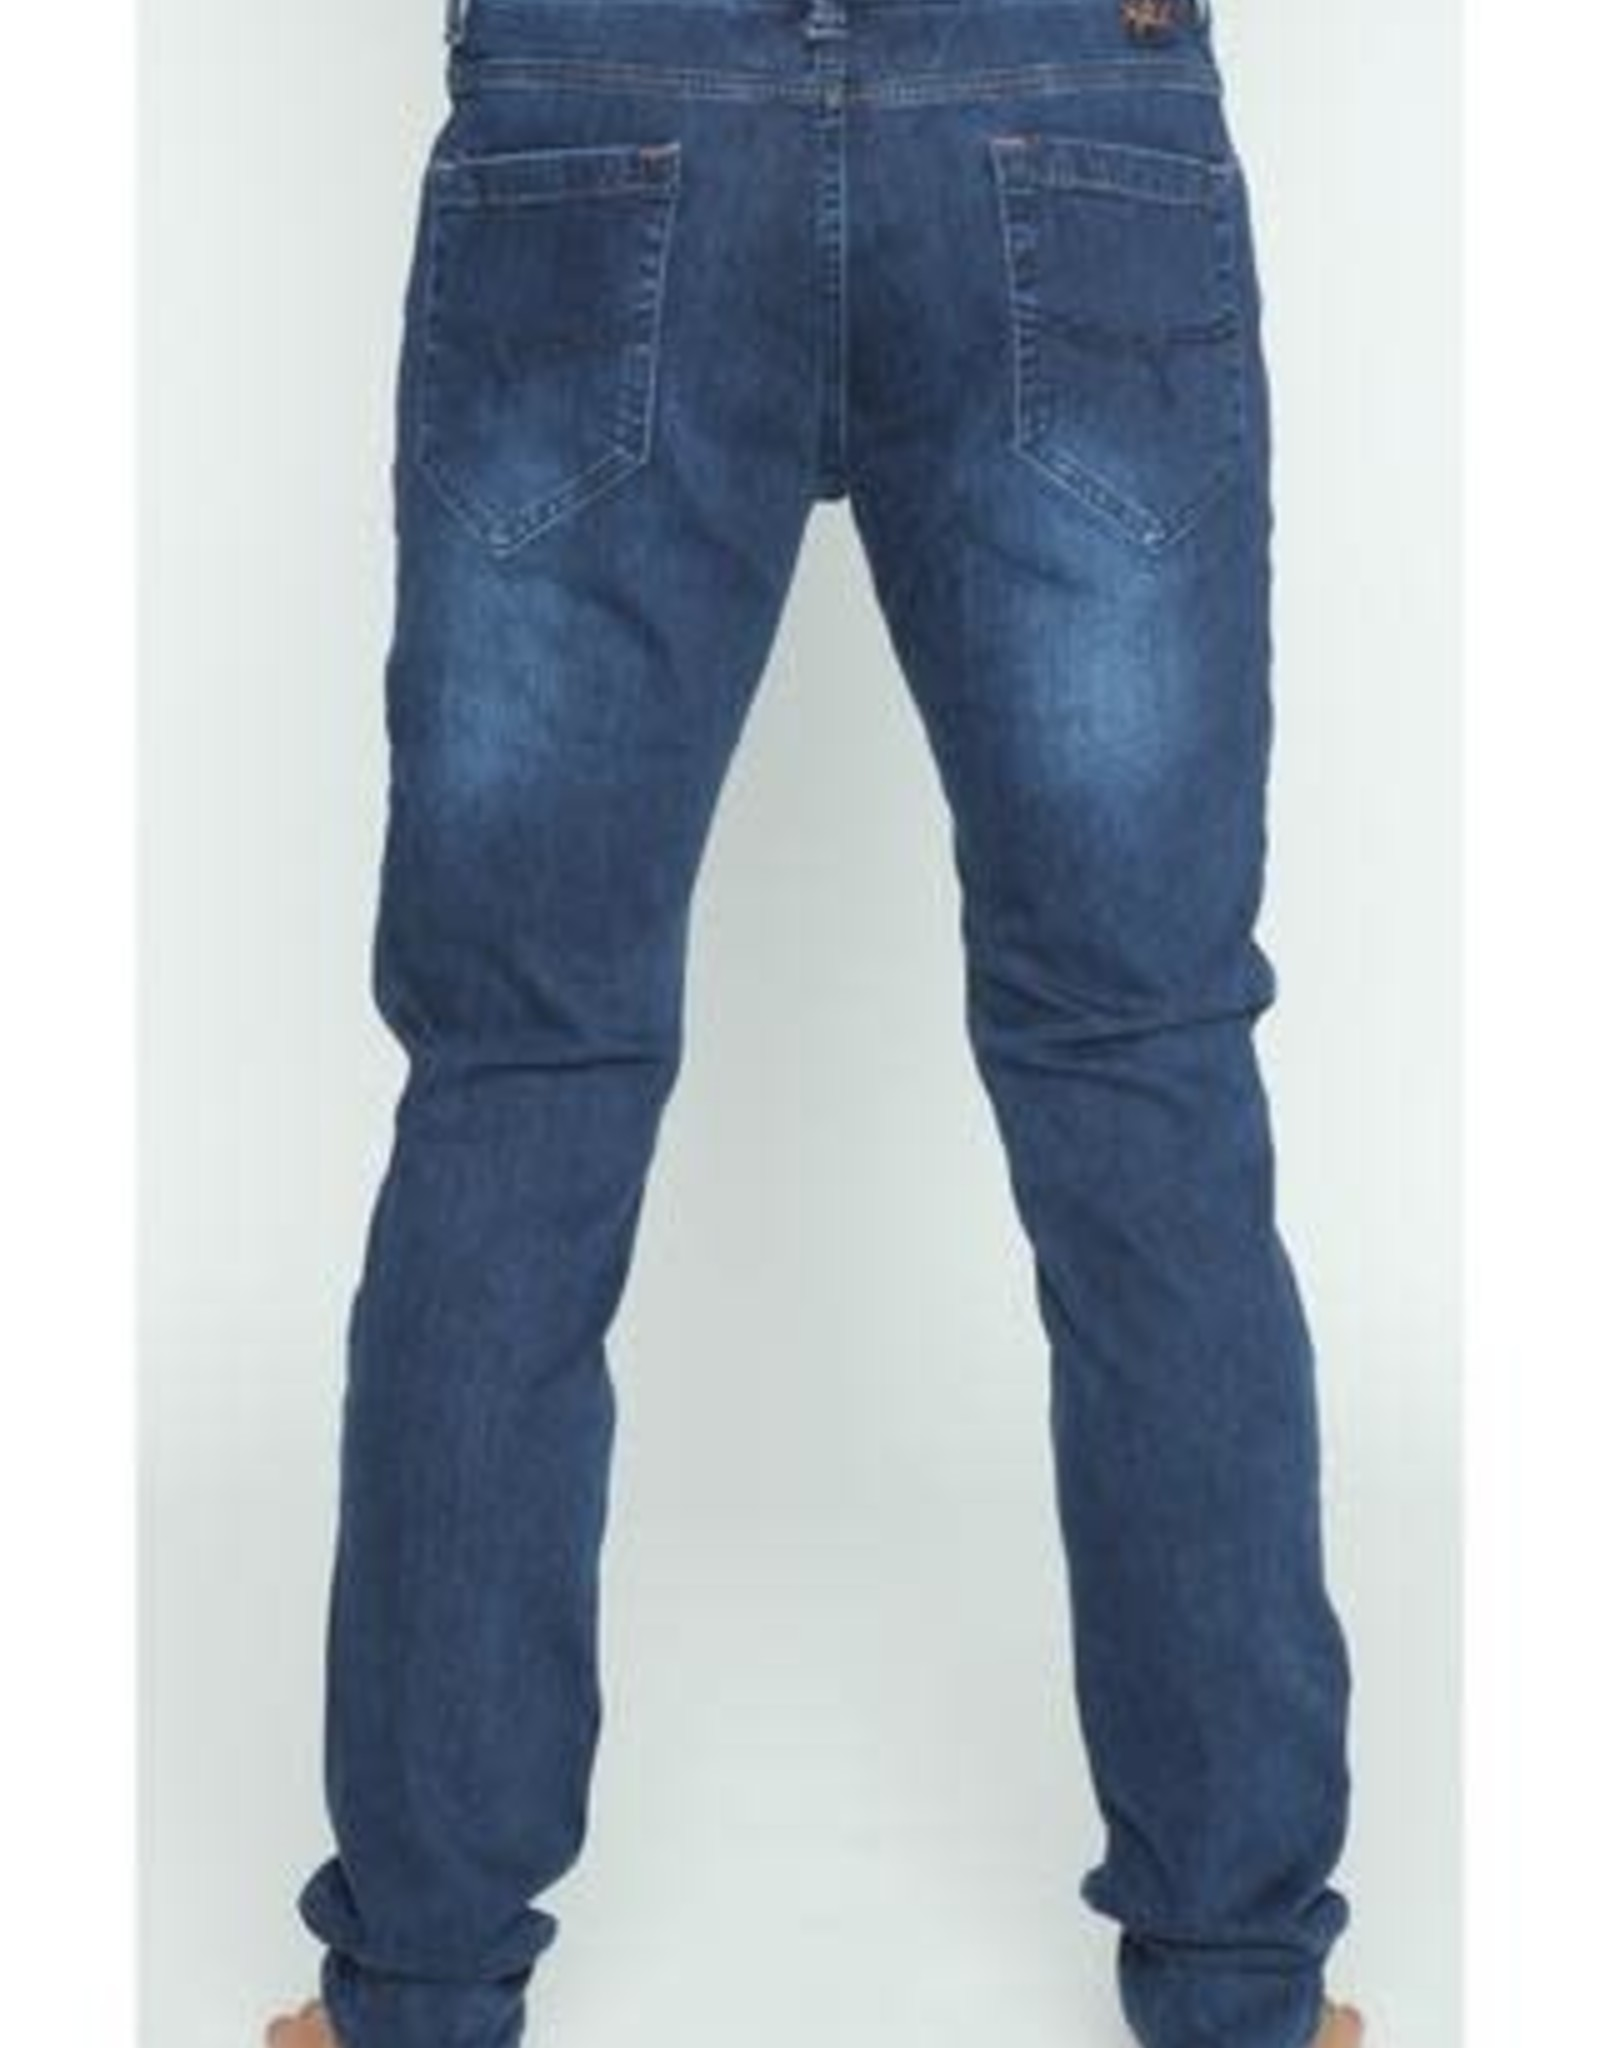 Eight X Dark Stretch Denim w/Fade Jean